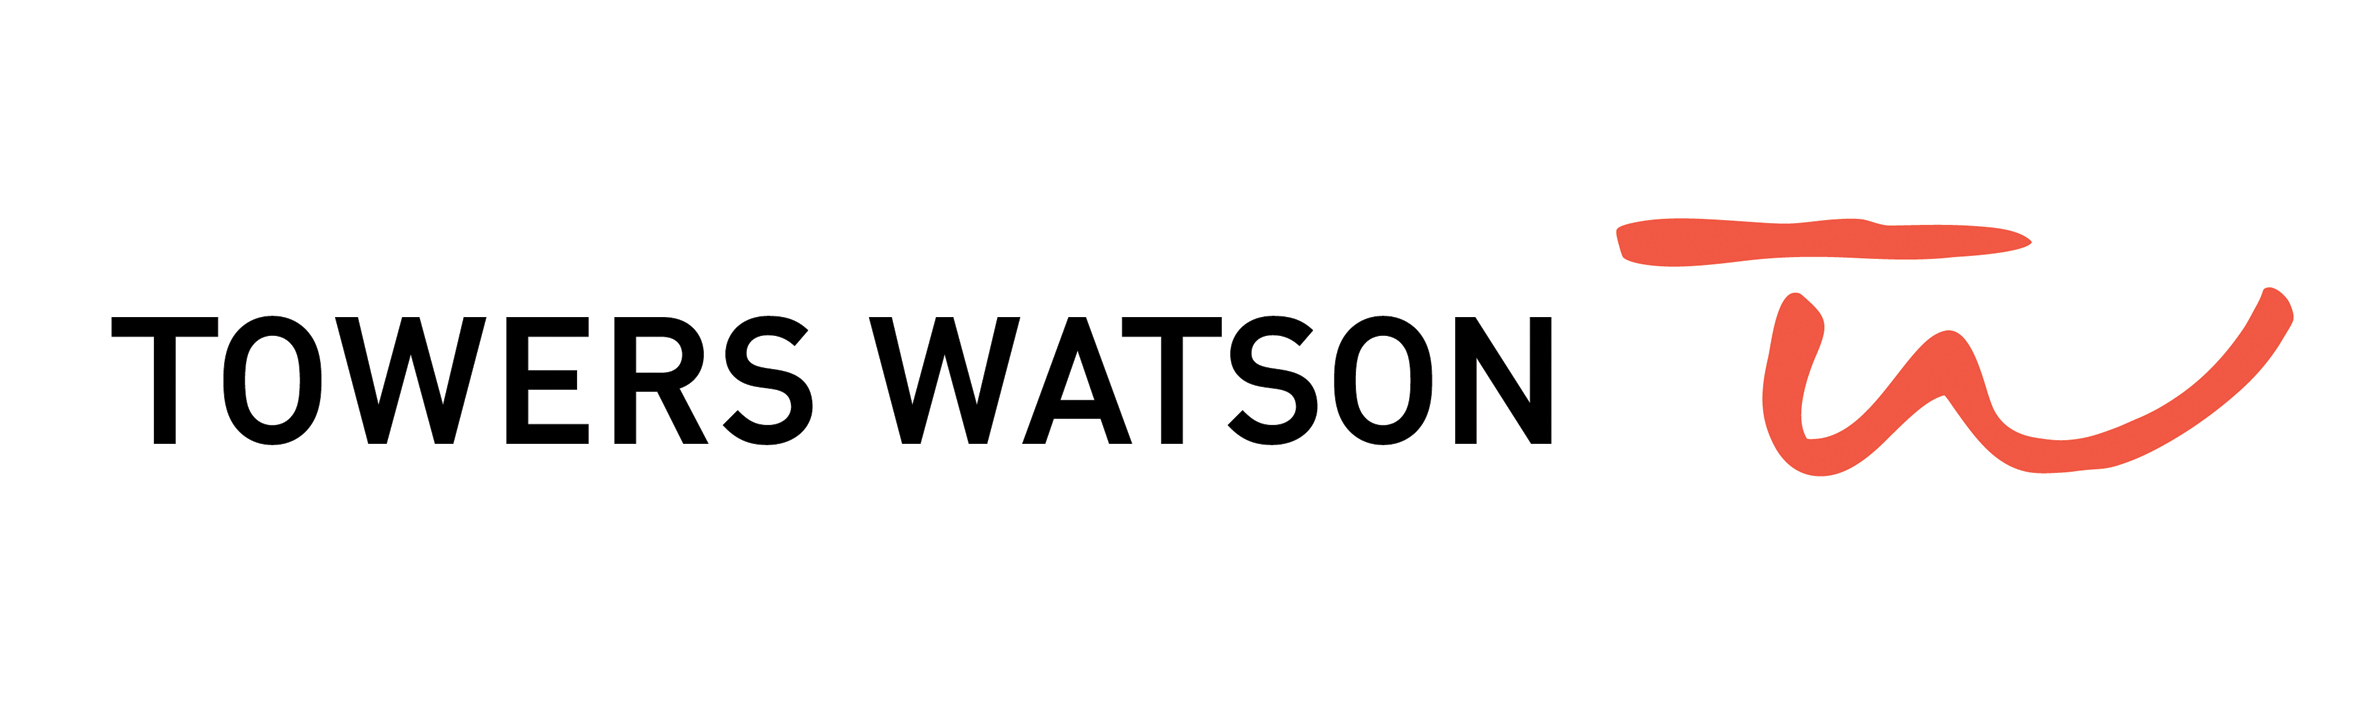 Towers Watson Shareholders Are Getting A Raw Deal - New Constructs